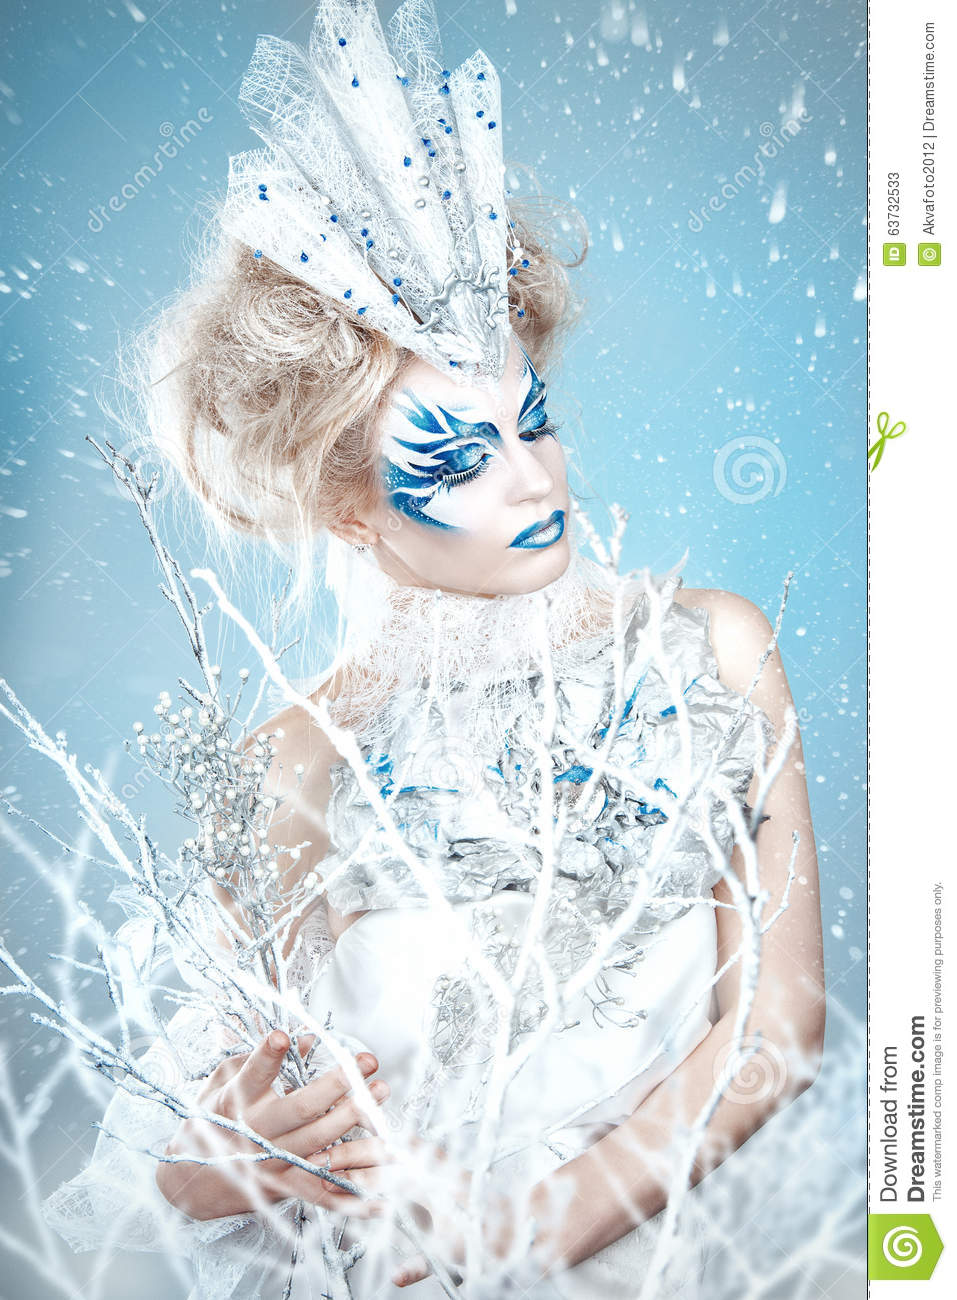 Beautiful girl with creative make-up for the new year. Winter portrait.